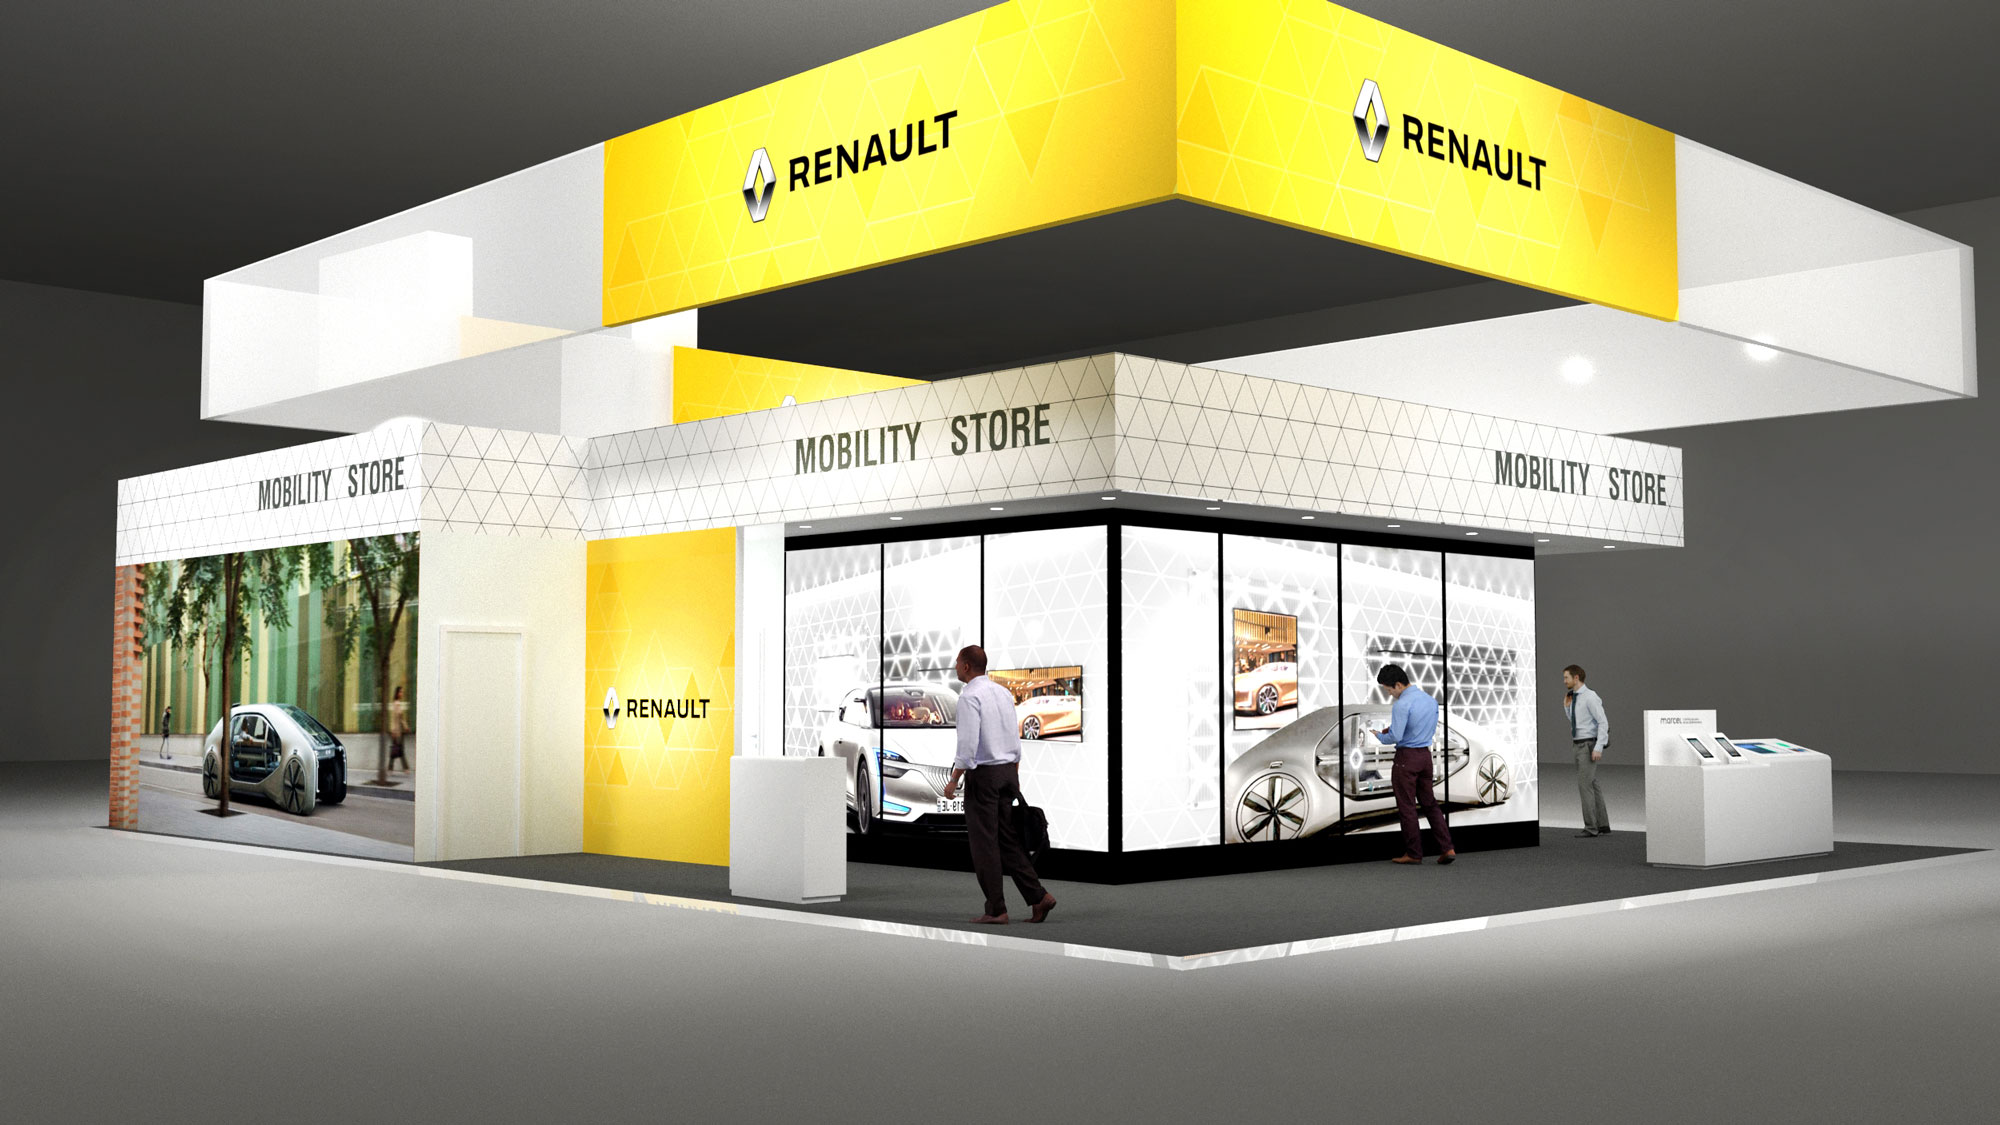 Event Renault Mobility Stand 4